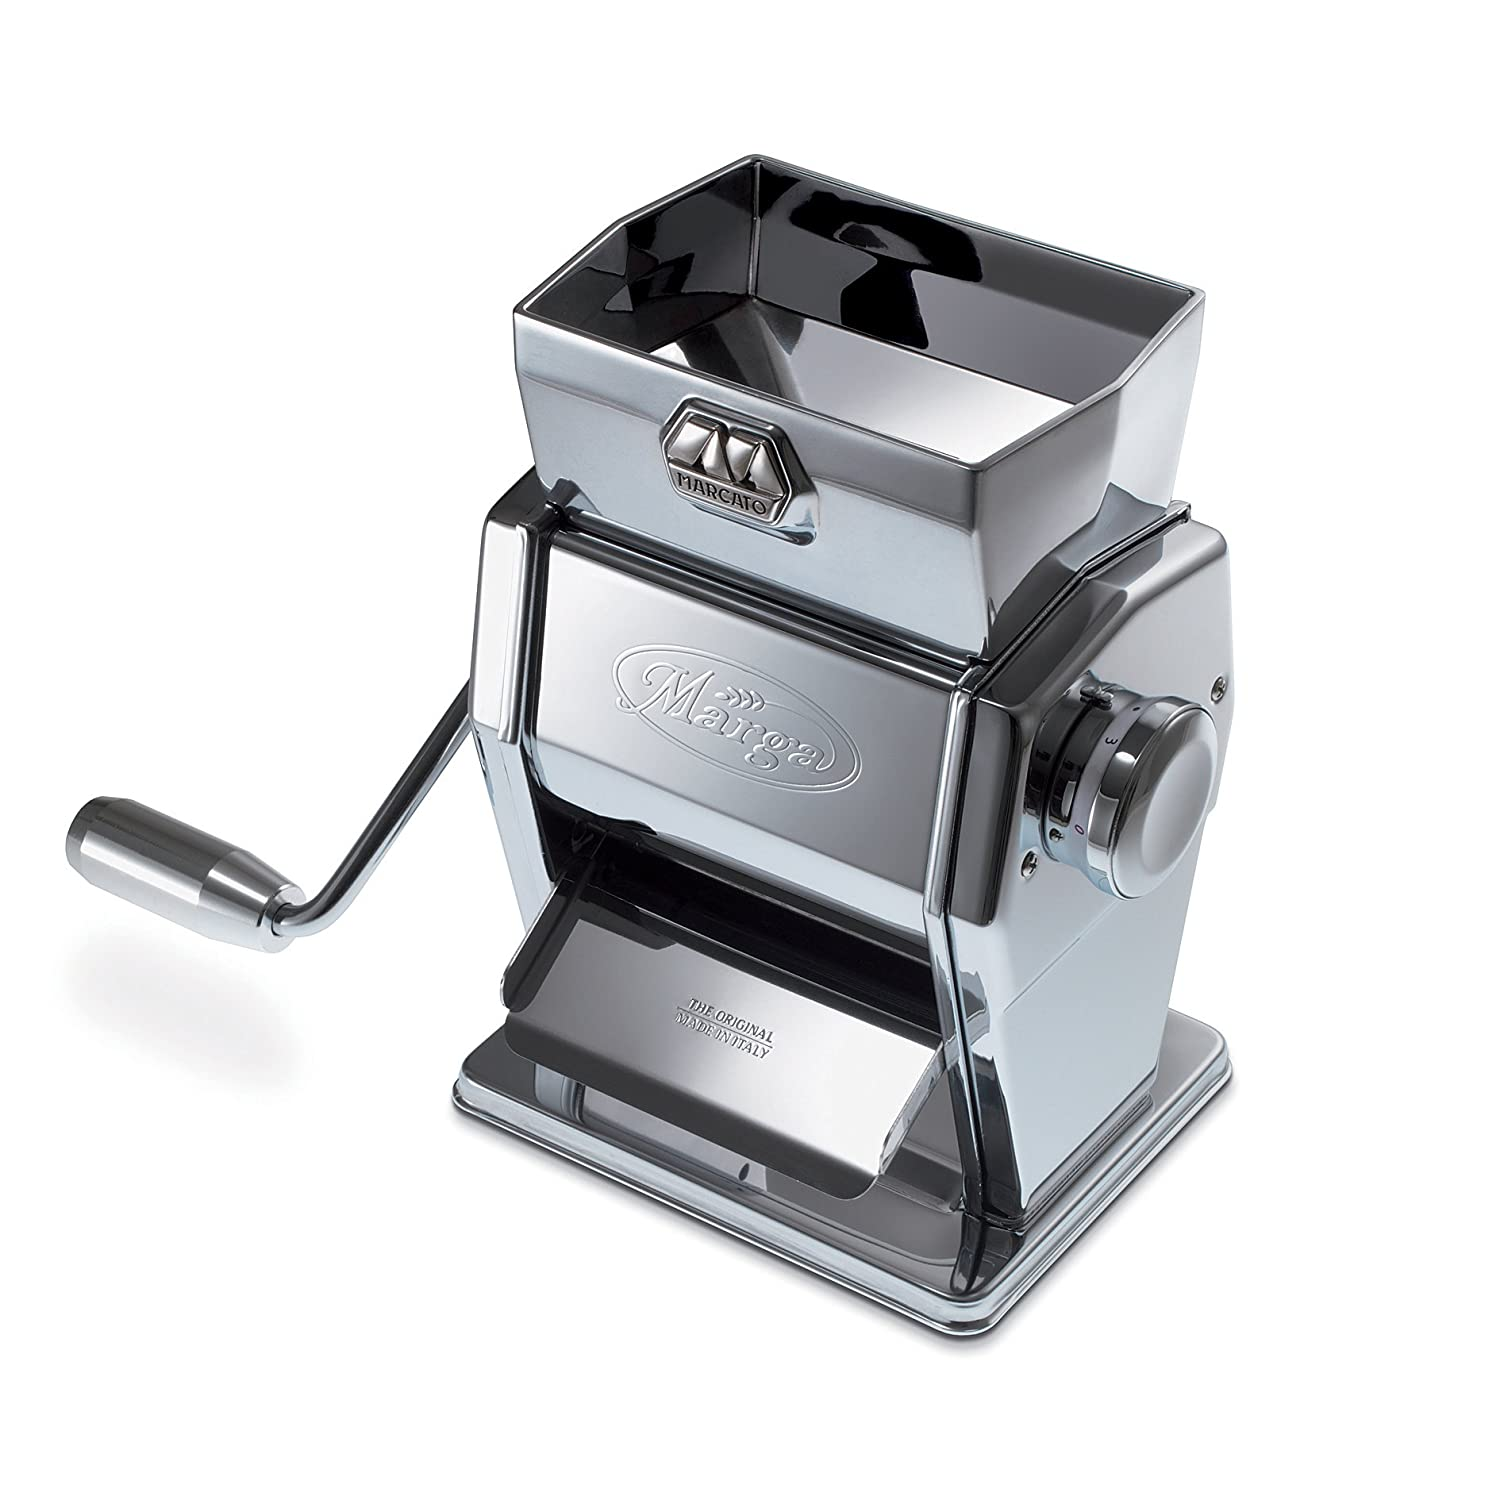 Atlas Made in Italy Marga Grain Mill Cereal Flake Maker, Chrome-Plated Steel Marcato 8346A